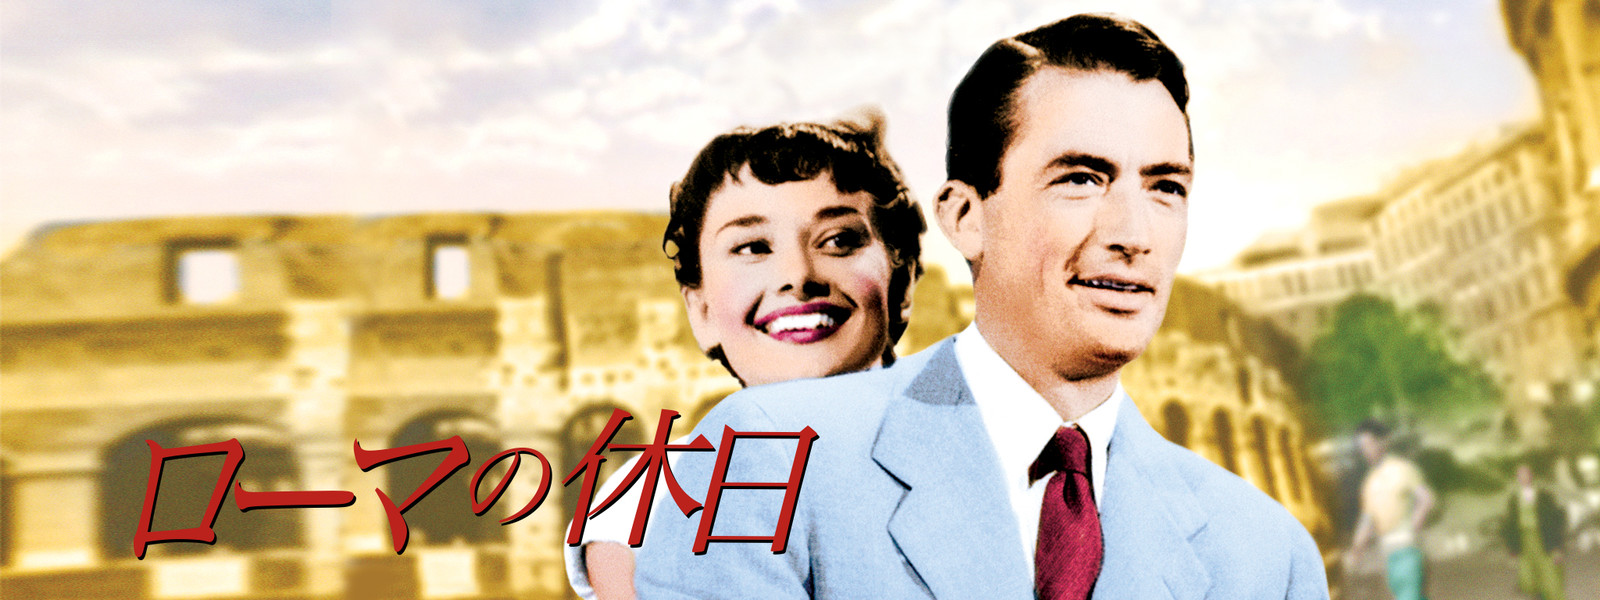 roman-holiday